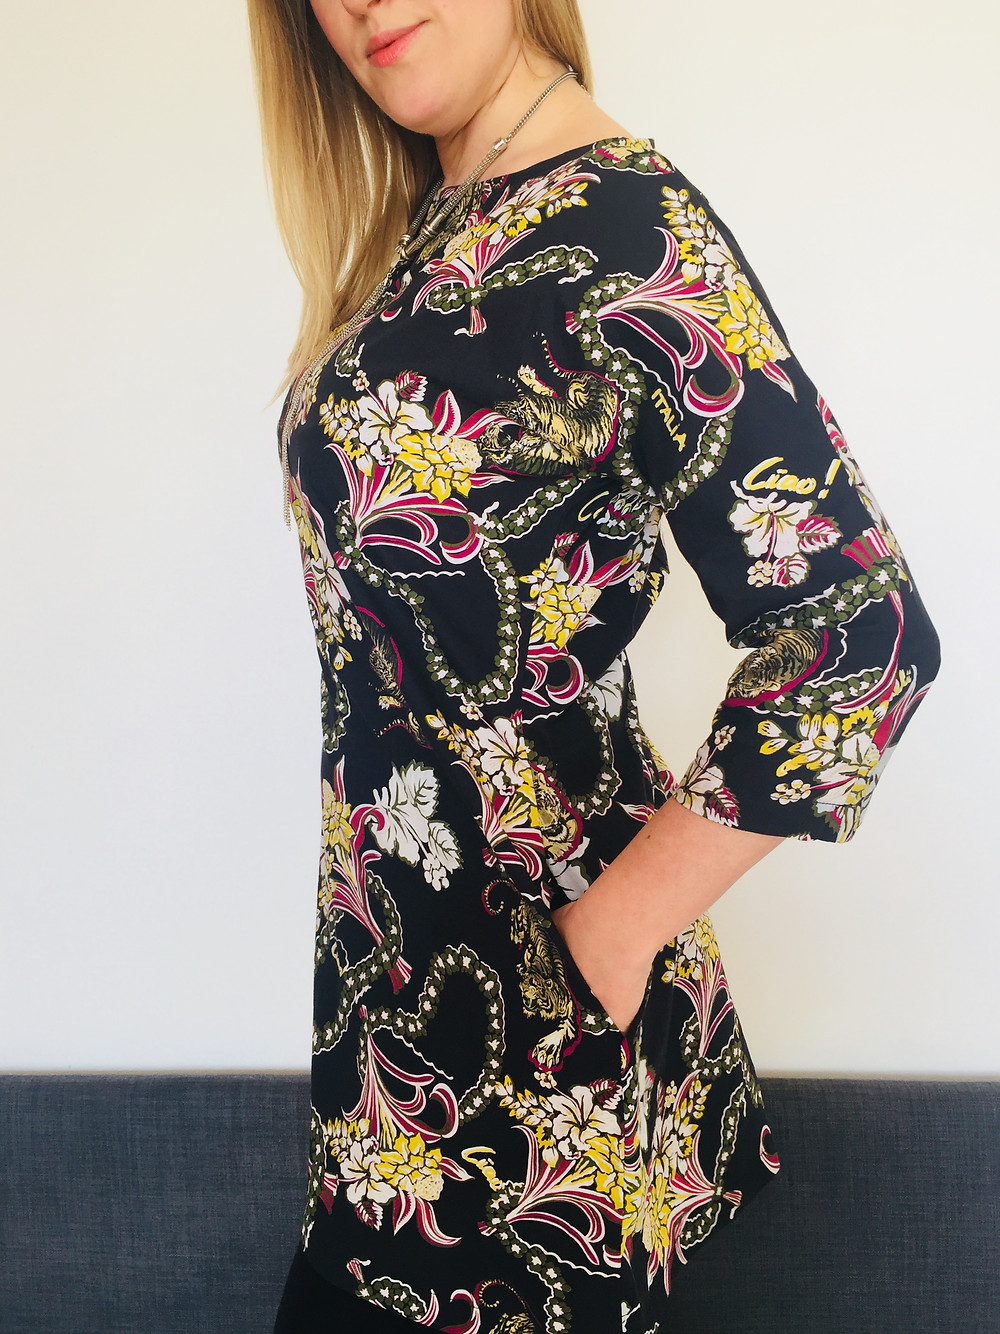 The self-drafted 'wild cat' shift dress